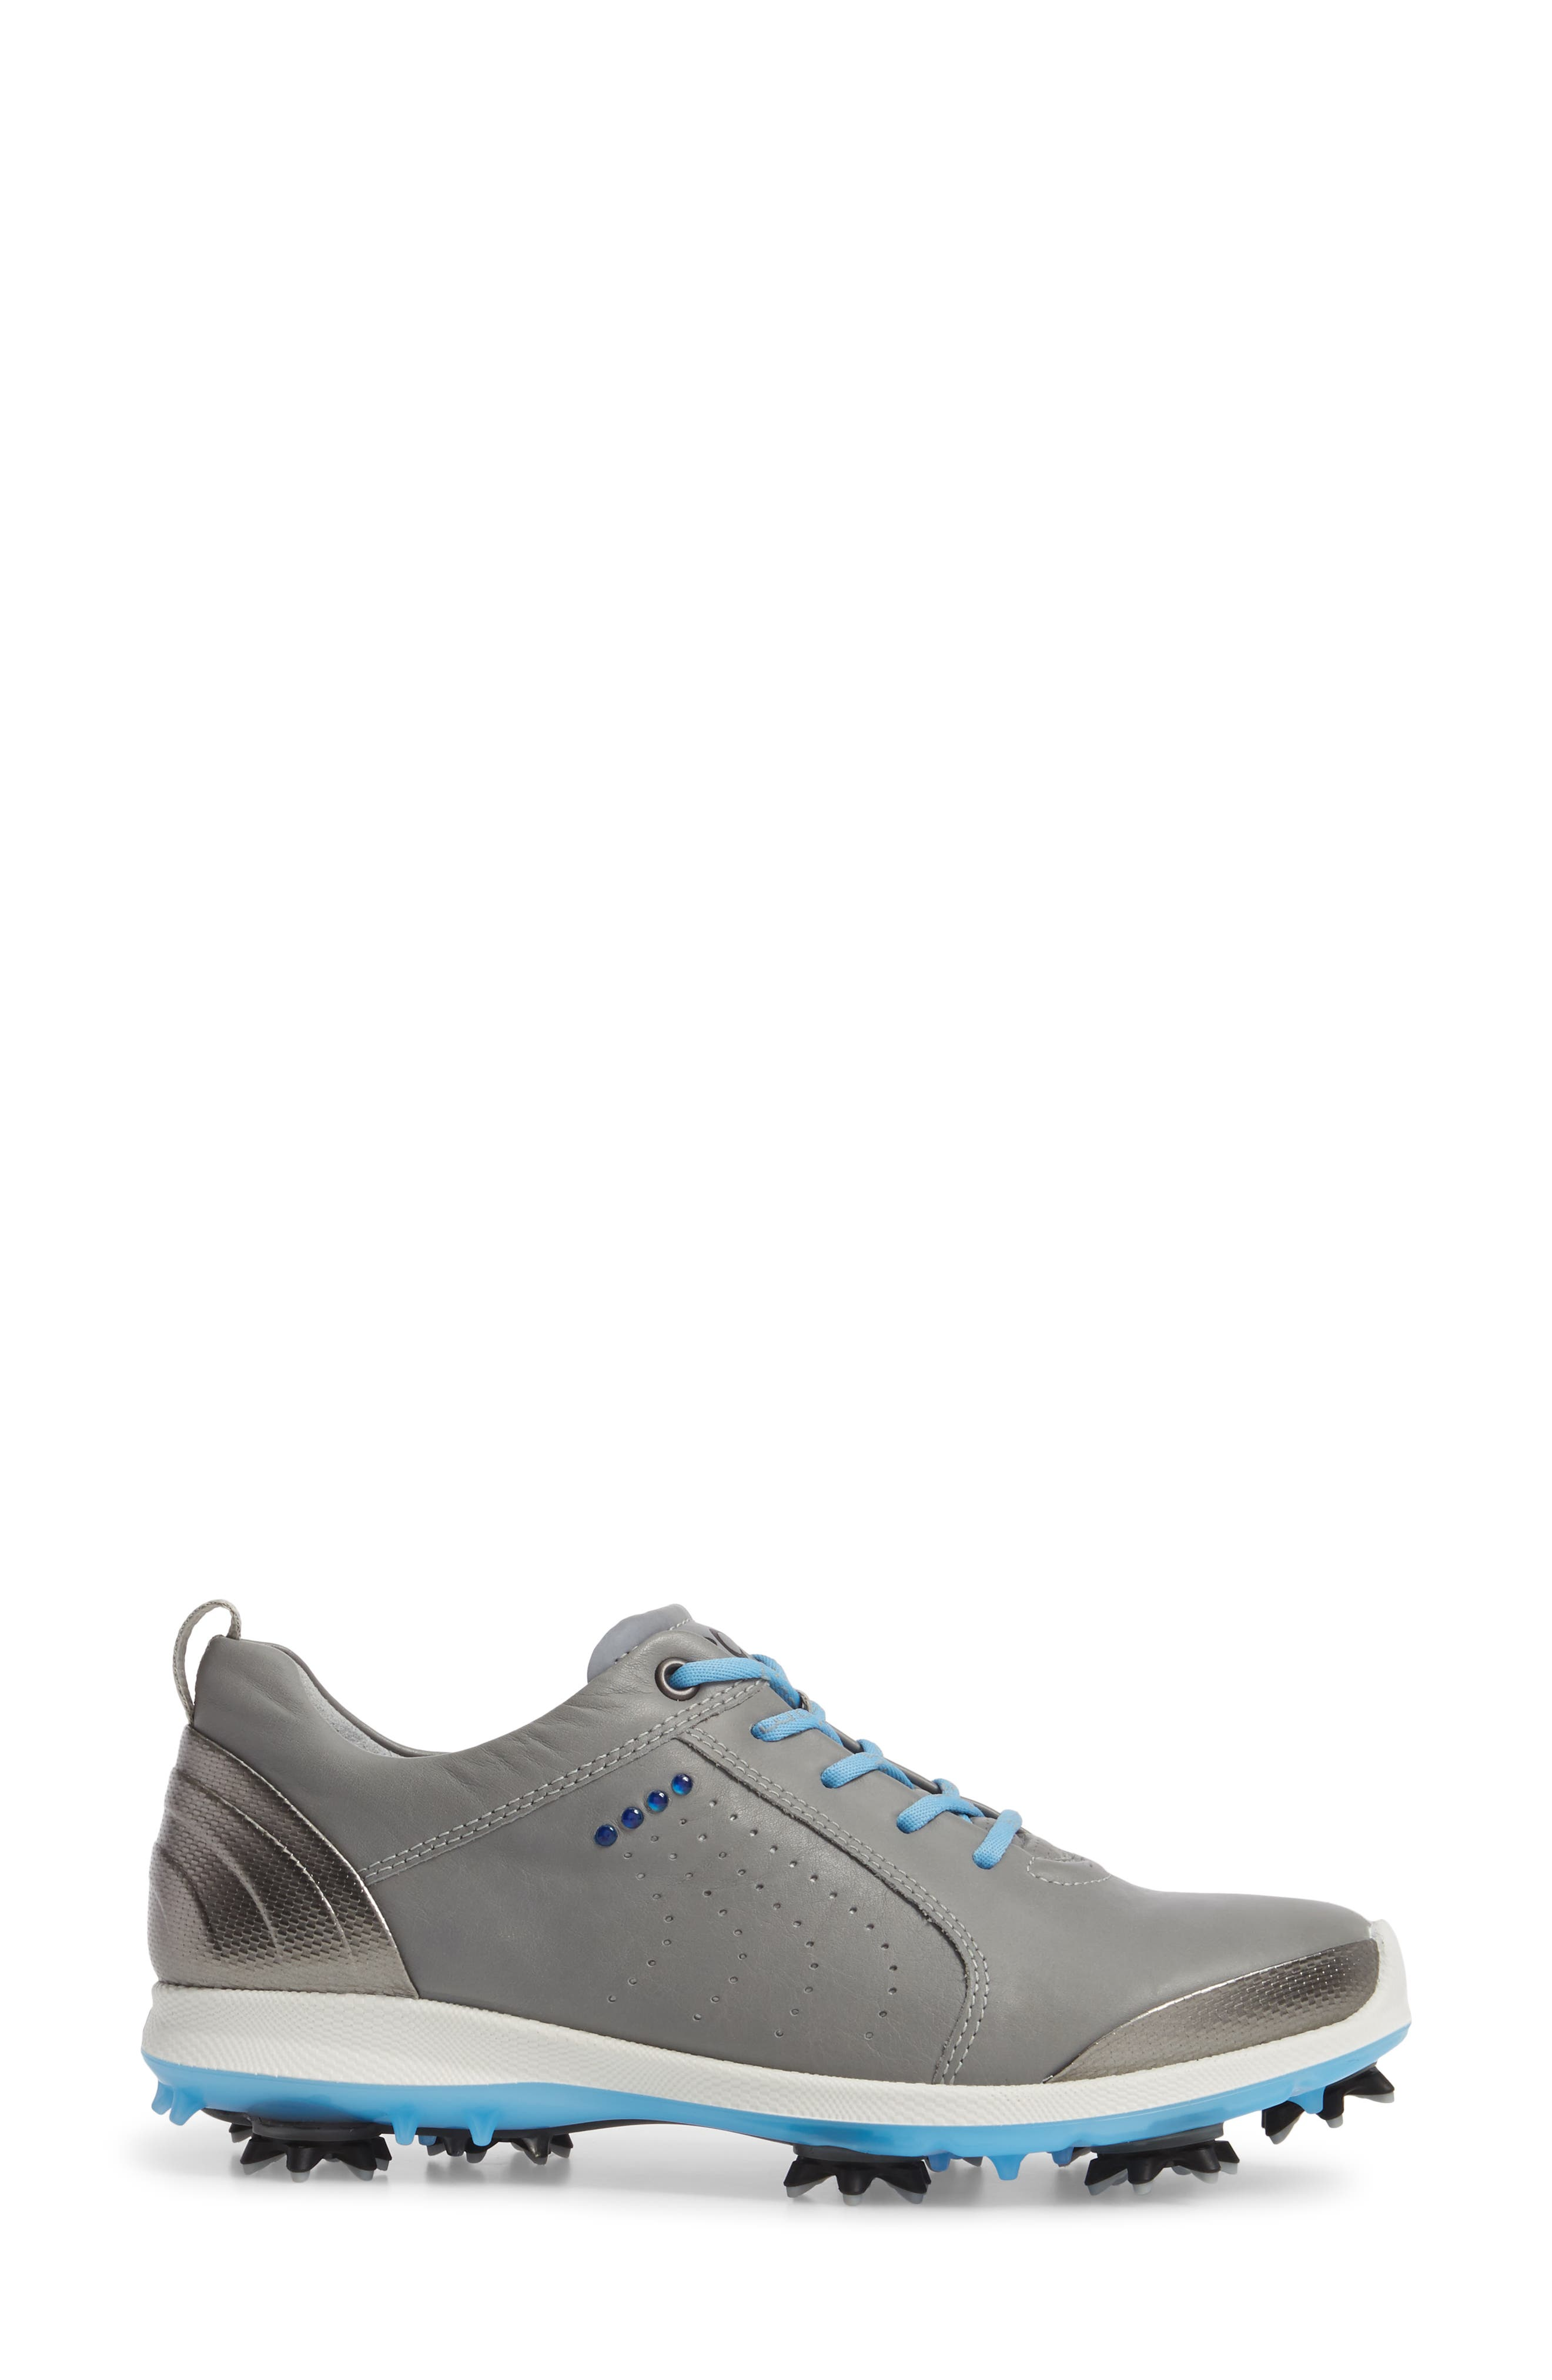 BIOM 2 Waterproof Golf Shoe,                             Alternate thumbnail 3, color,                             Wild Dove/ Sky Blue Leather